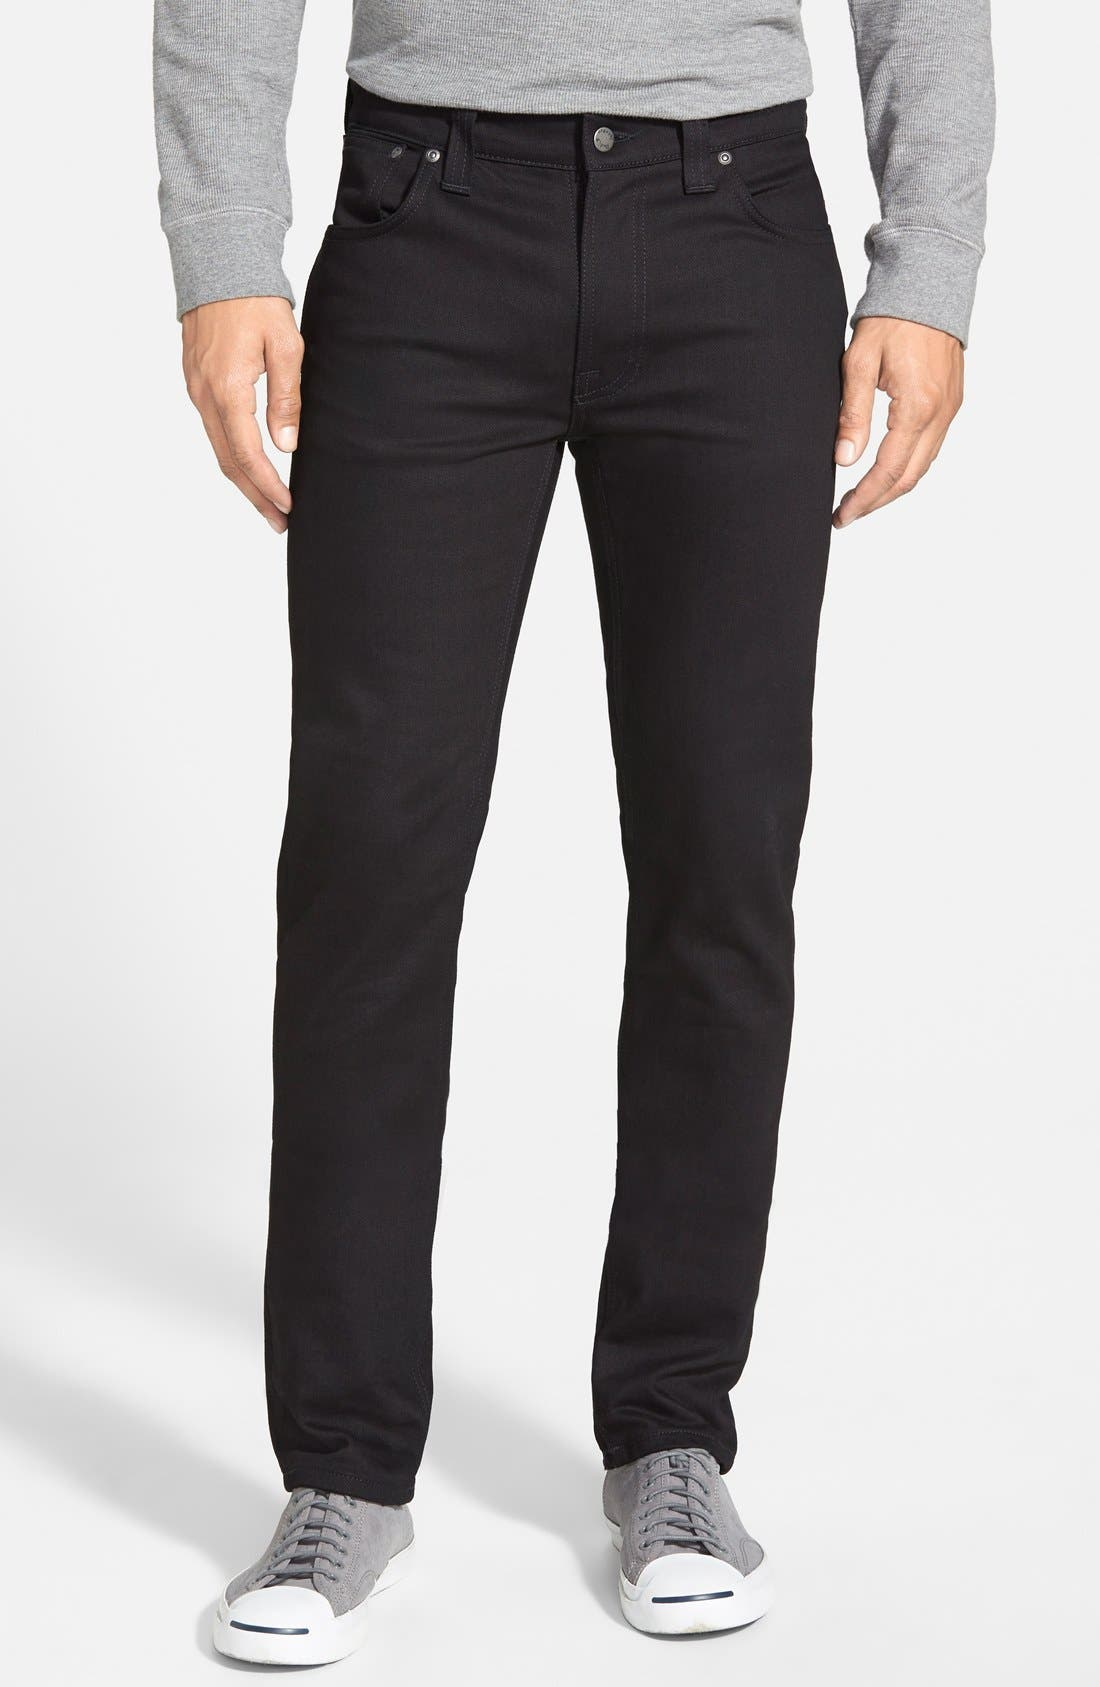 Main Image - Nudie Jeans 'Thin Finn' Skinny Fit Jeans (Black Ring)